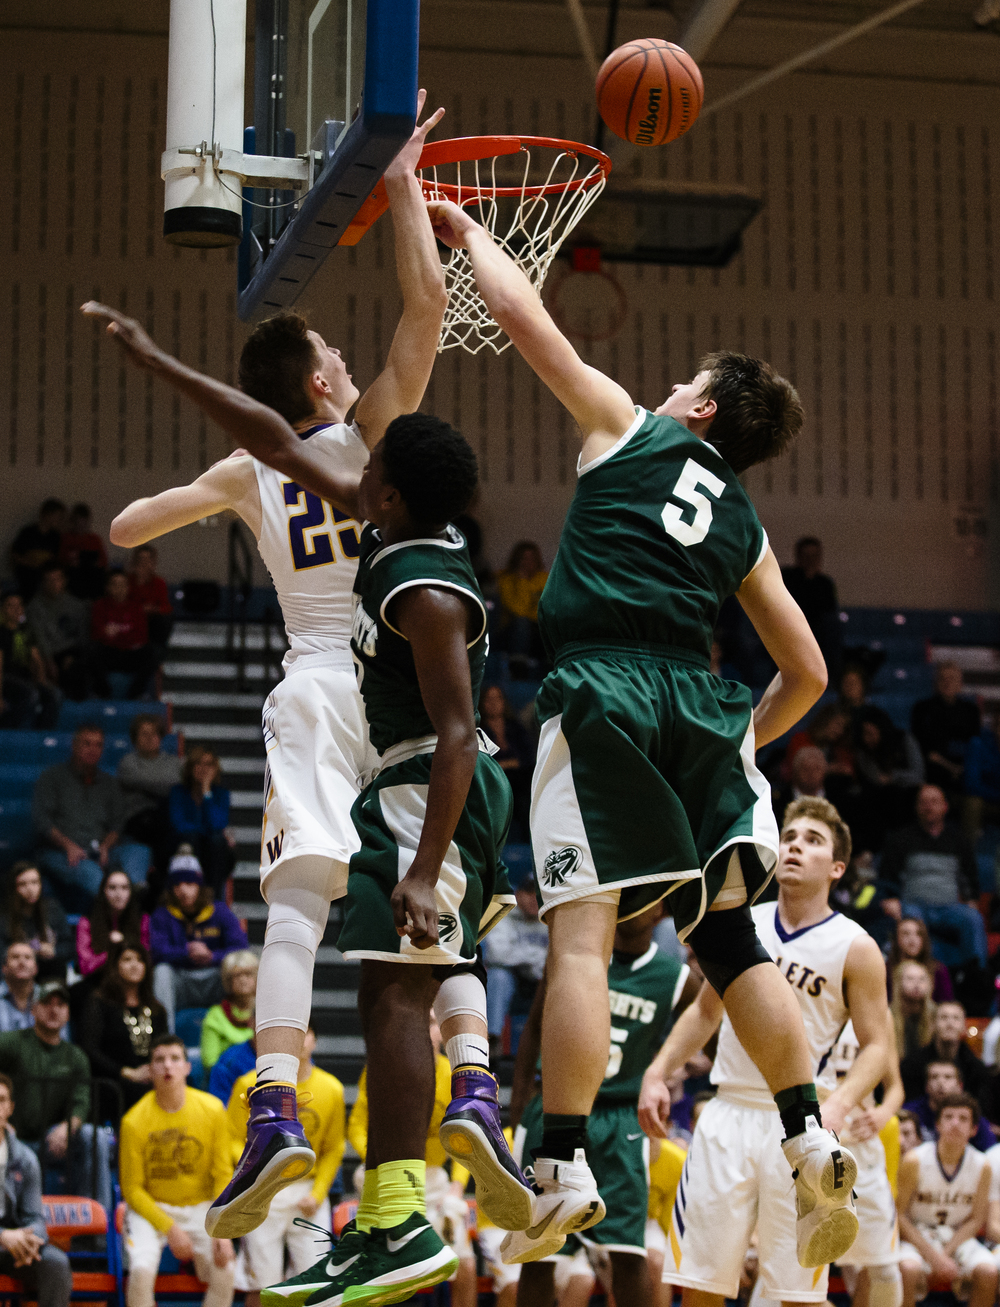 Williamsville's Harrison Cresswell (25) has his shot blocked by Metro-East Lutheran's Jason Johnson (5) in the fourth quarter during the Riverton Subway Shootout at Riverton High School, Saturday, Feb. 13, 2016, in Riverton, Ill. Justin L. Fowler/The State Journal-Register